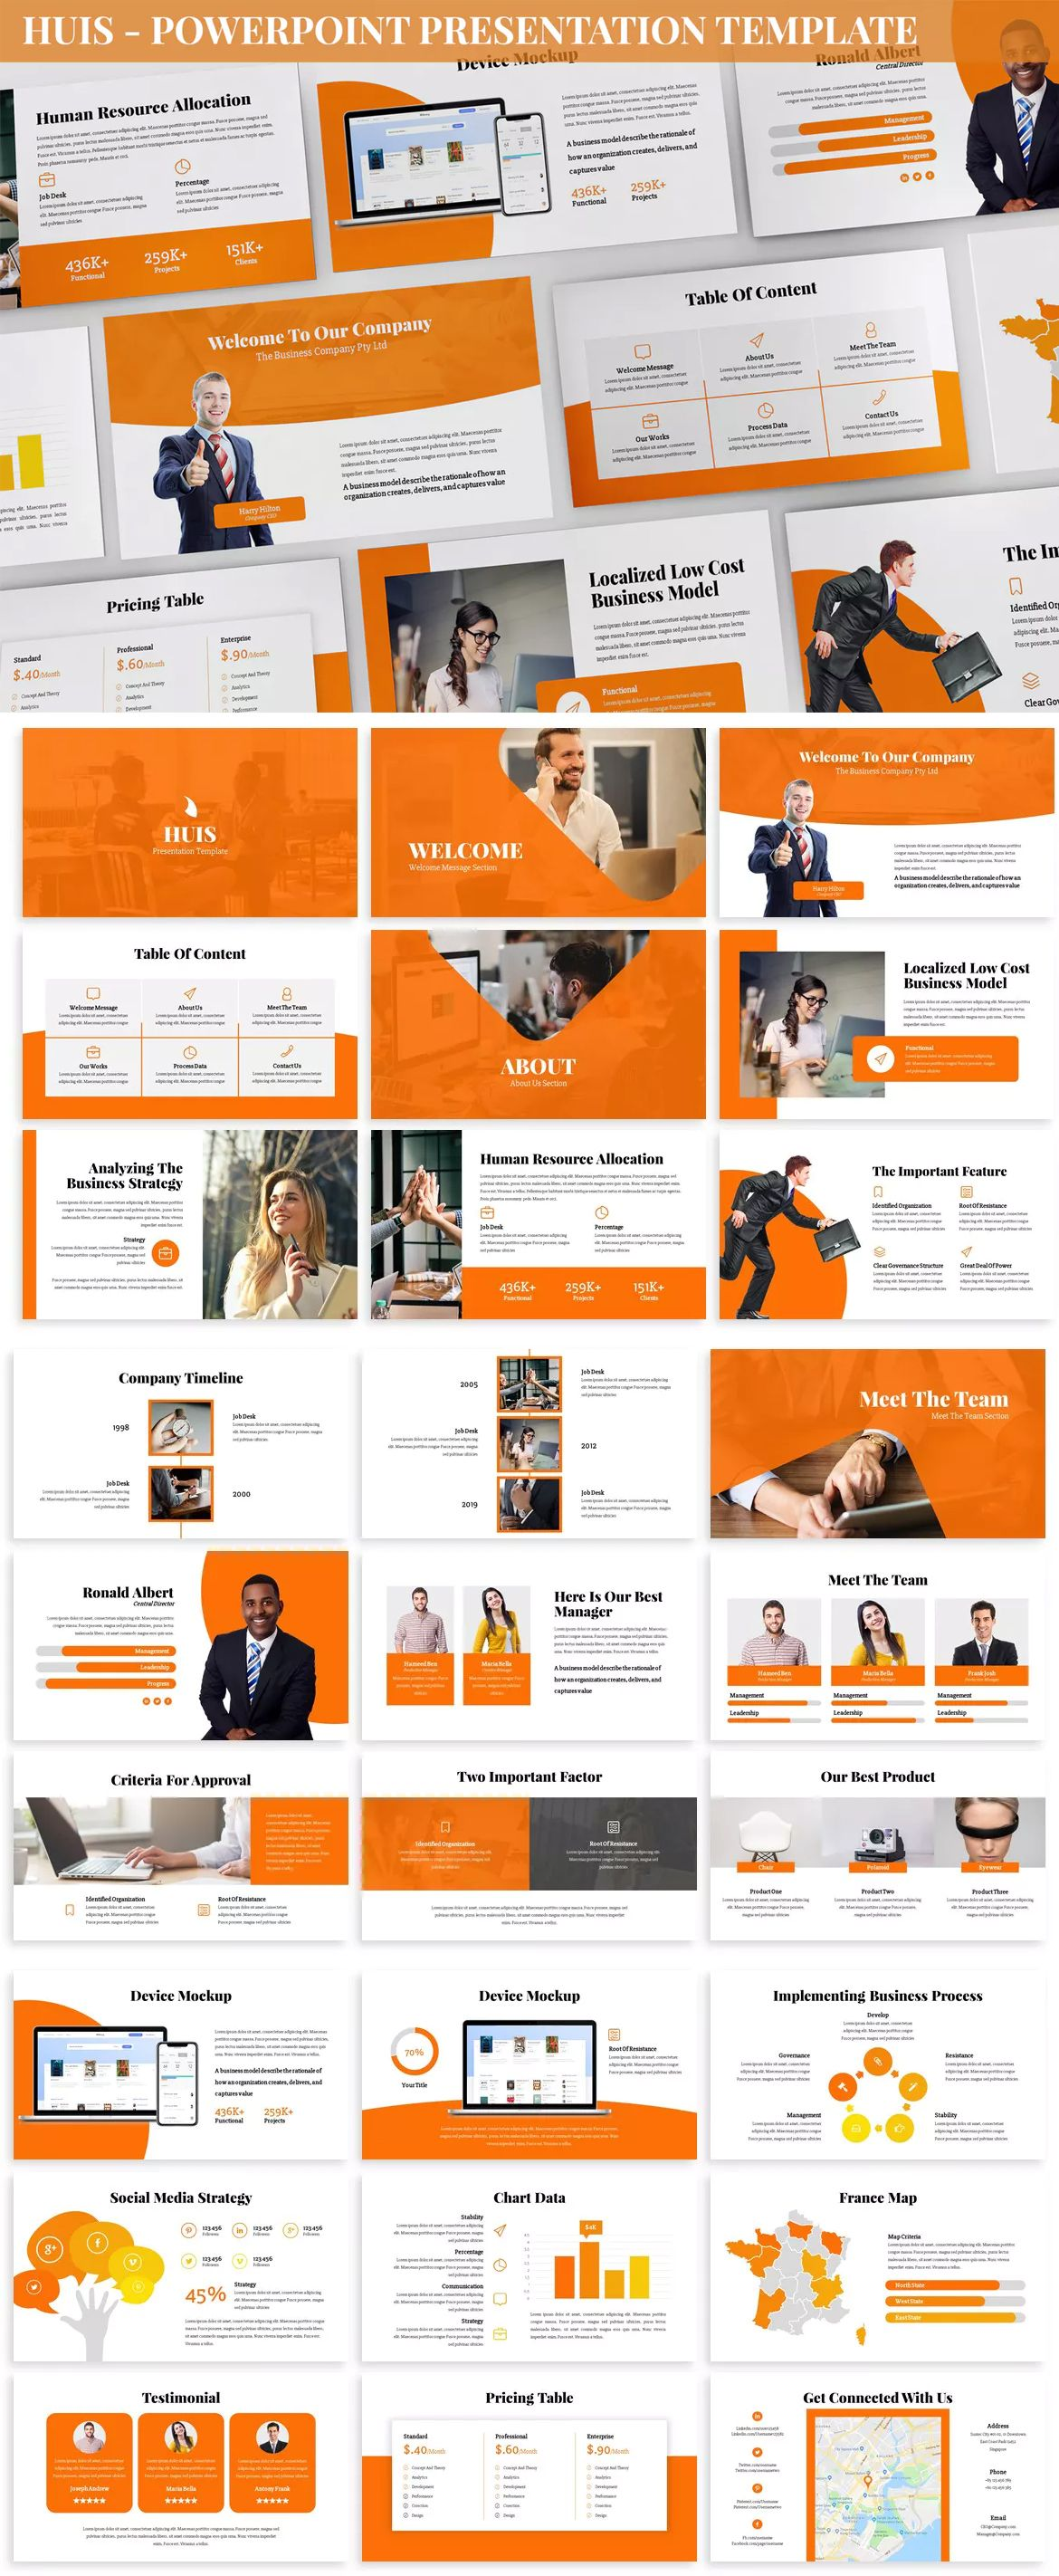 Huis Powerpoint Presentation Template 360 Total Slides 30